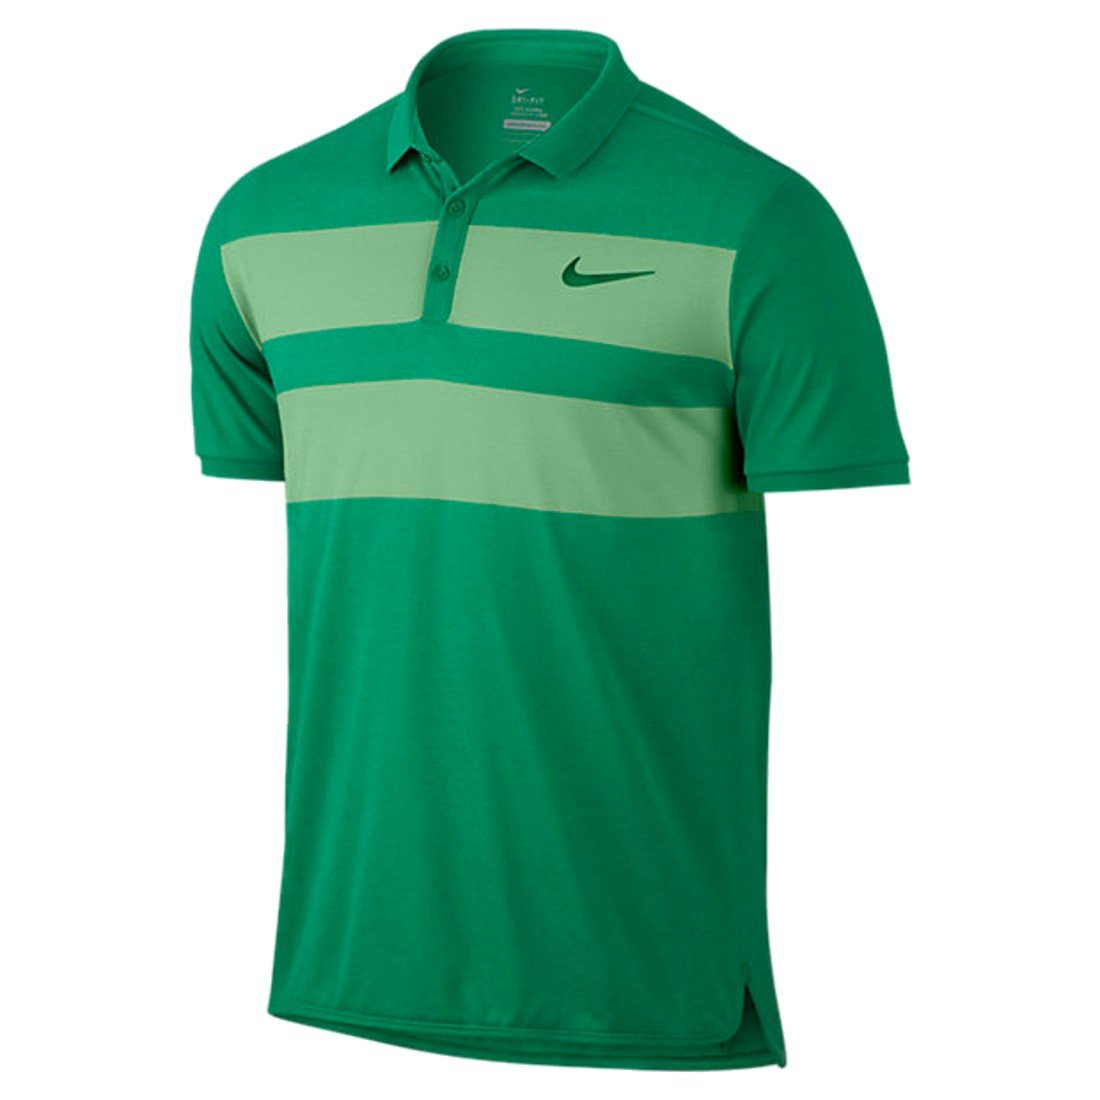 Nike Advanced Cool Tenis Polo, Color Lucid Green/Pine Green ...